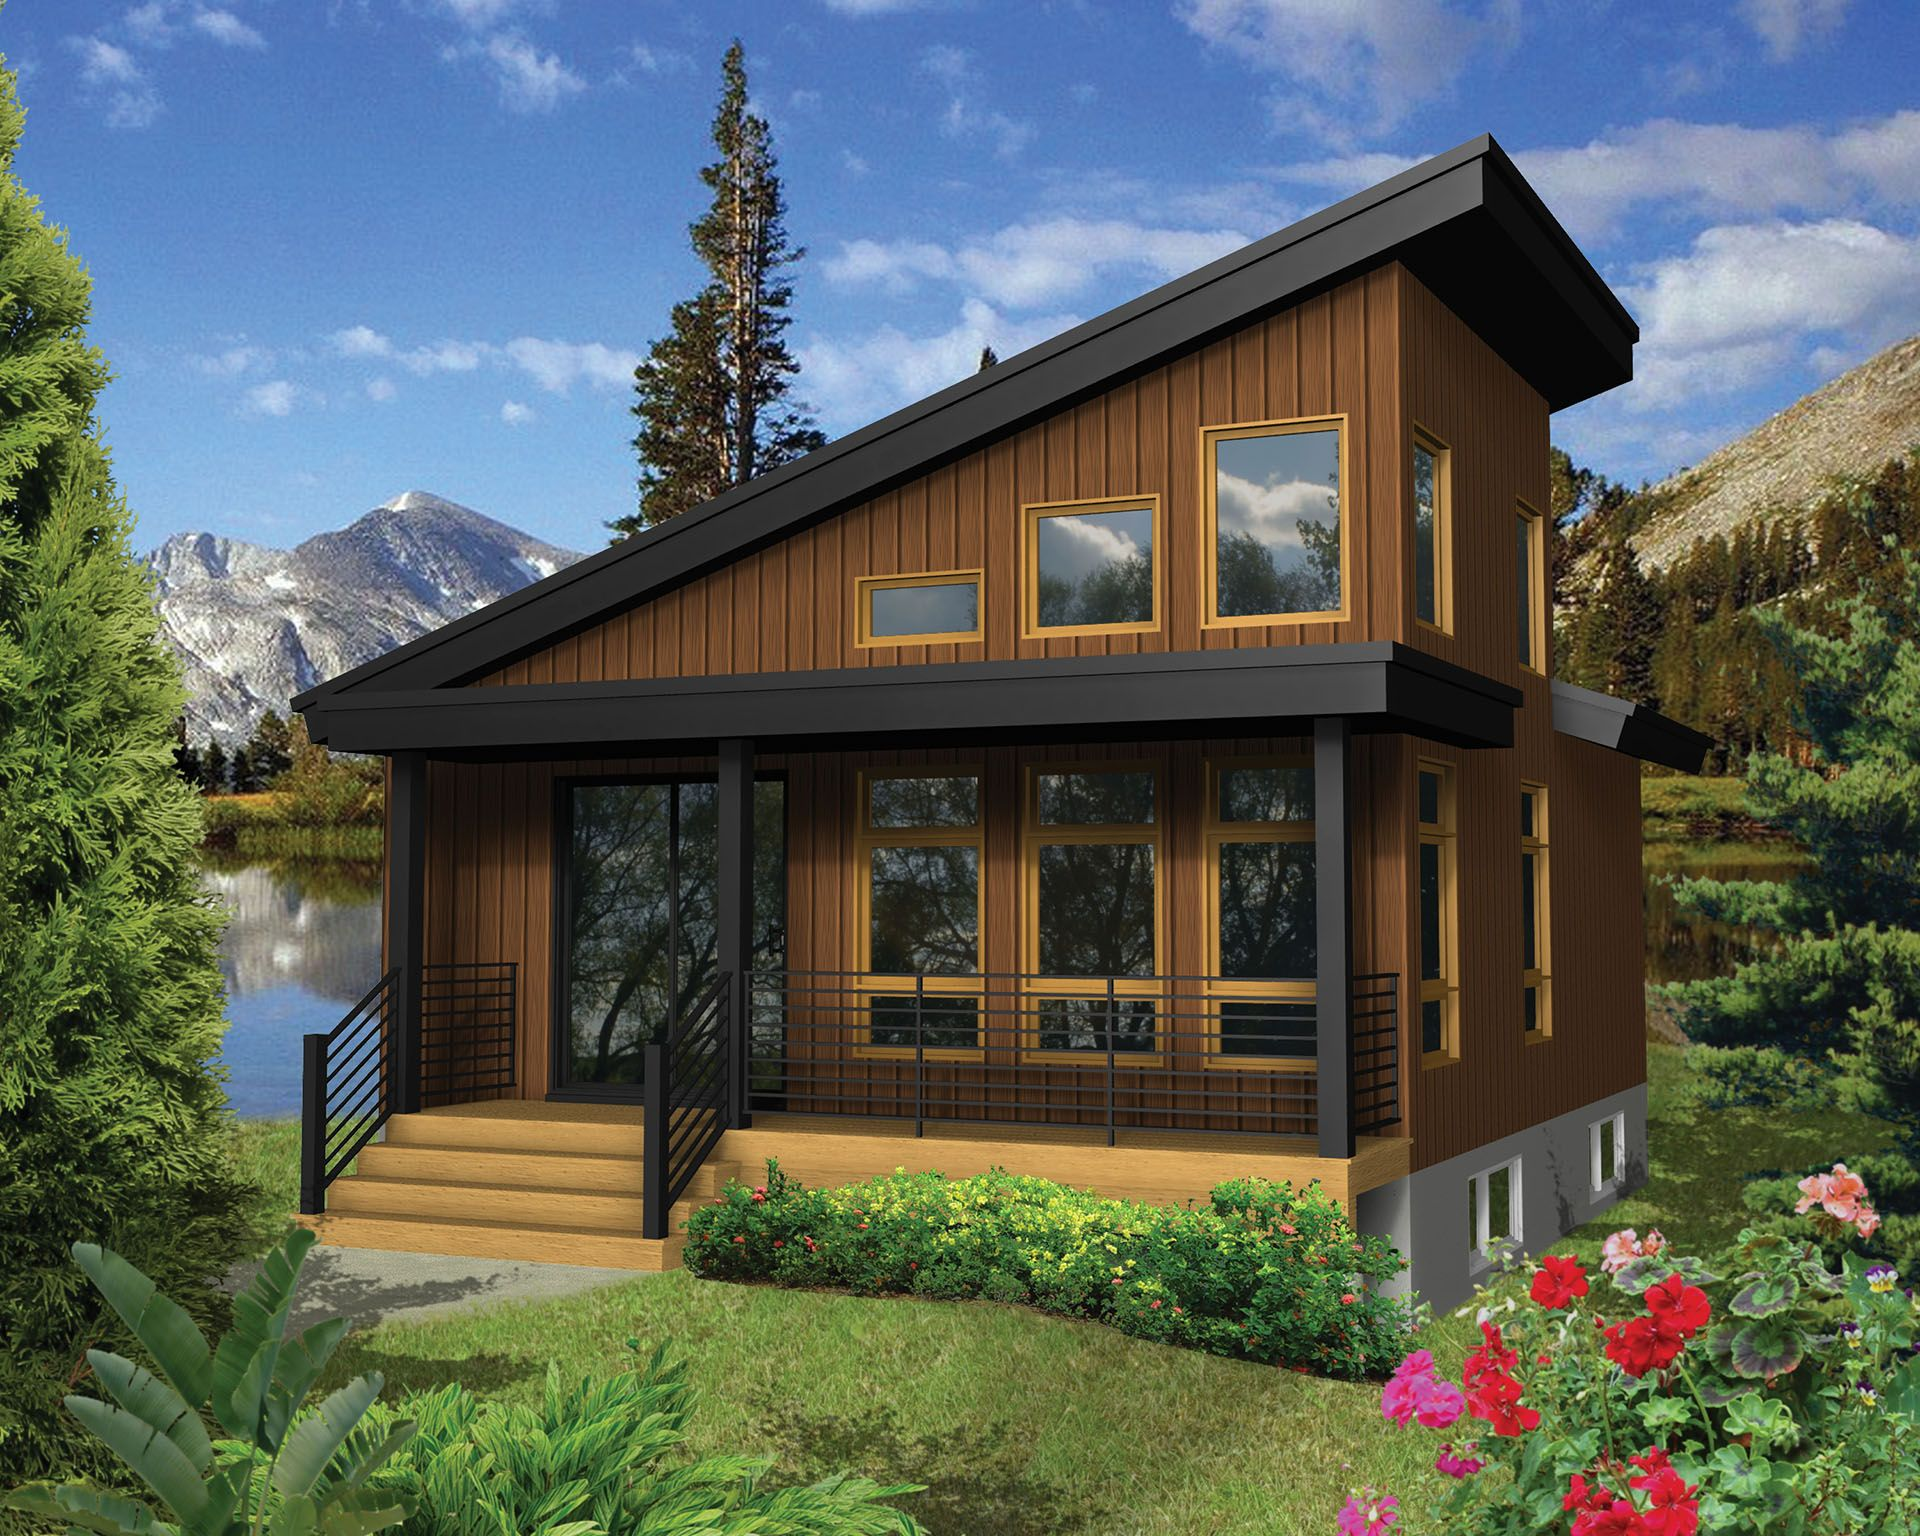 Plan 80813pm Modern Escape With Dramatic Roofline Contemporary House Plans Rustic Modern Cabin Small Cabin Designs